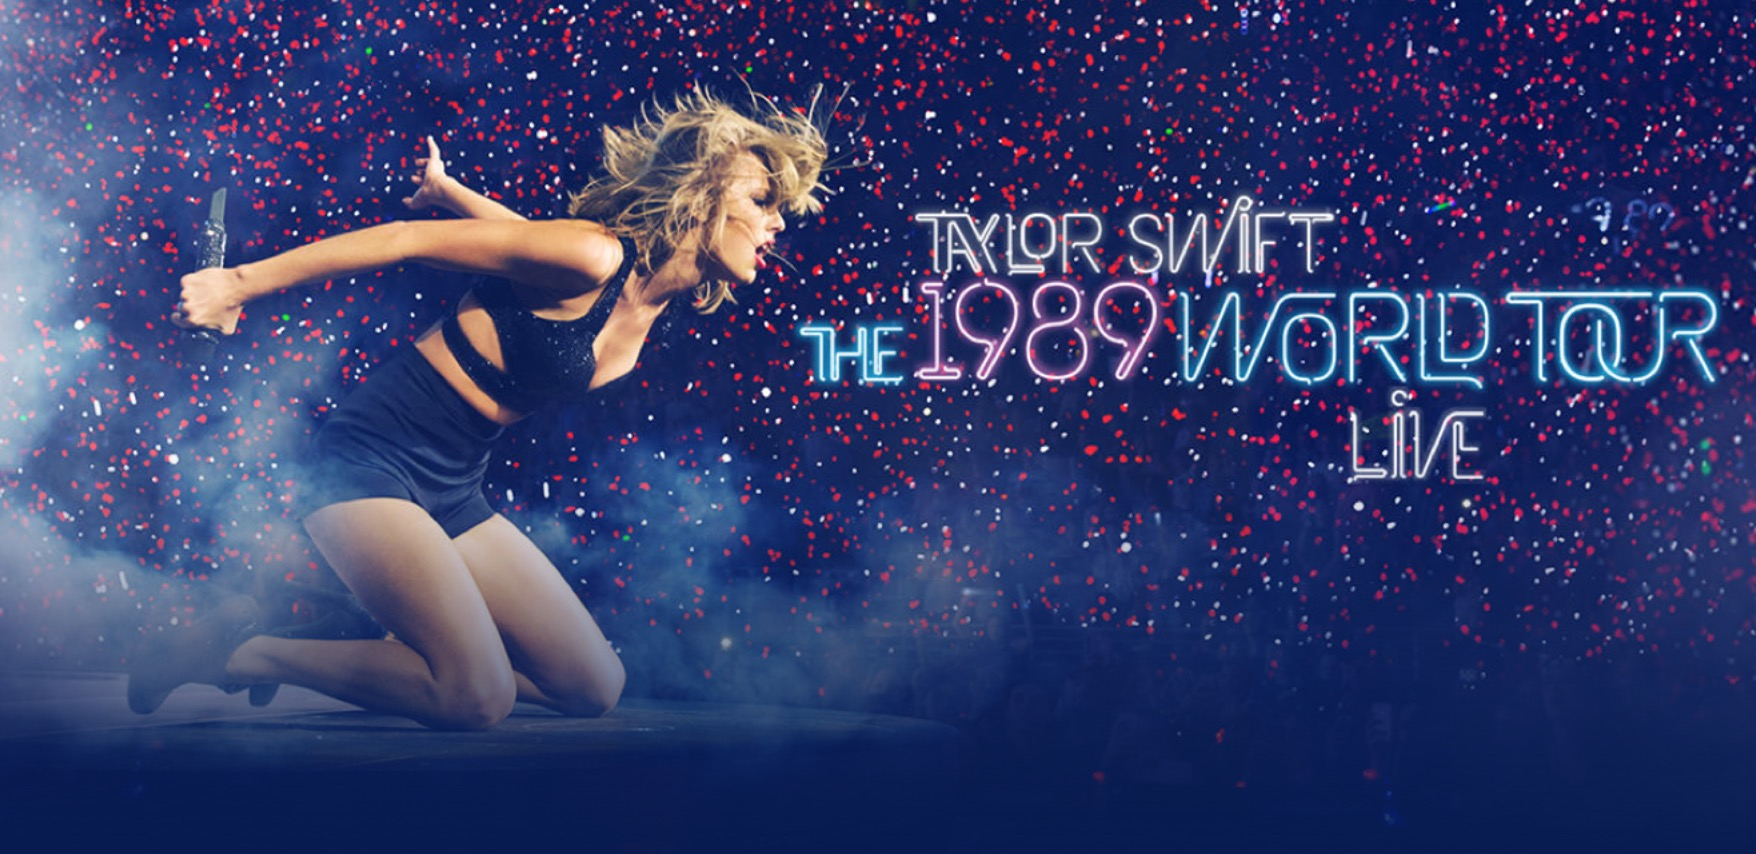 Taylor Swift Live 1989 World Tour Movie